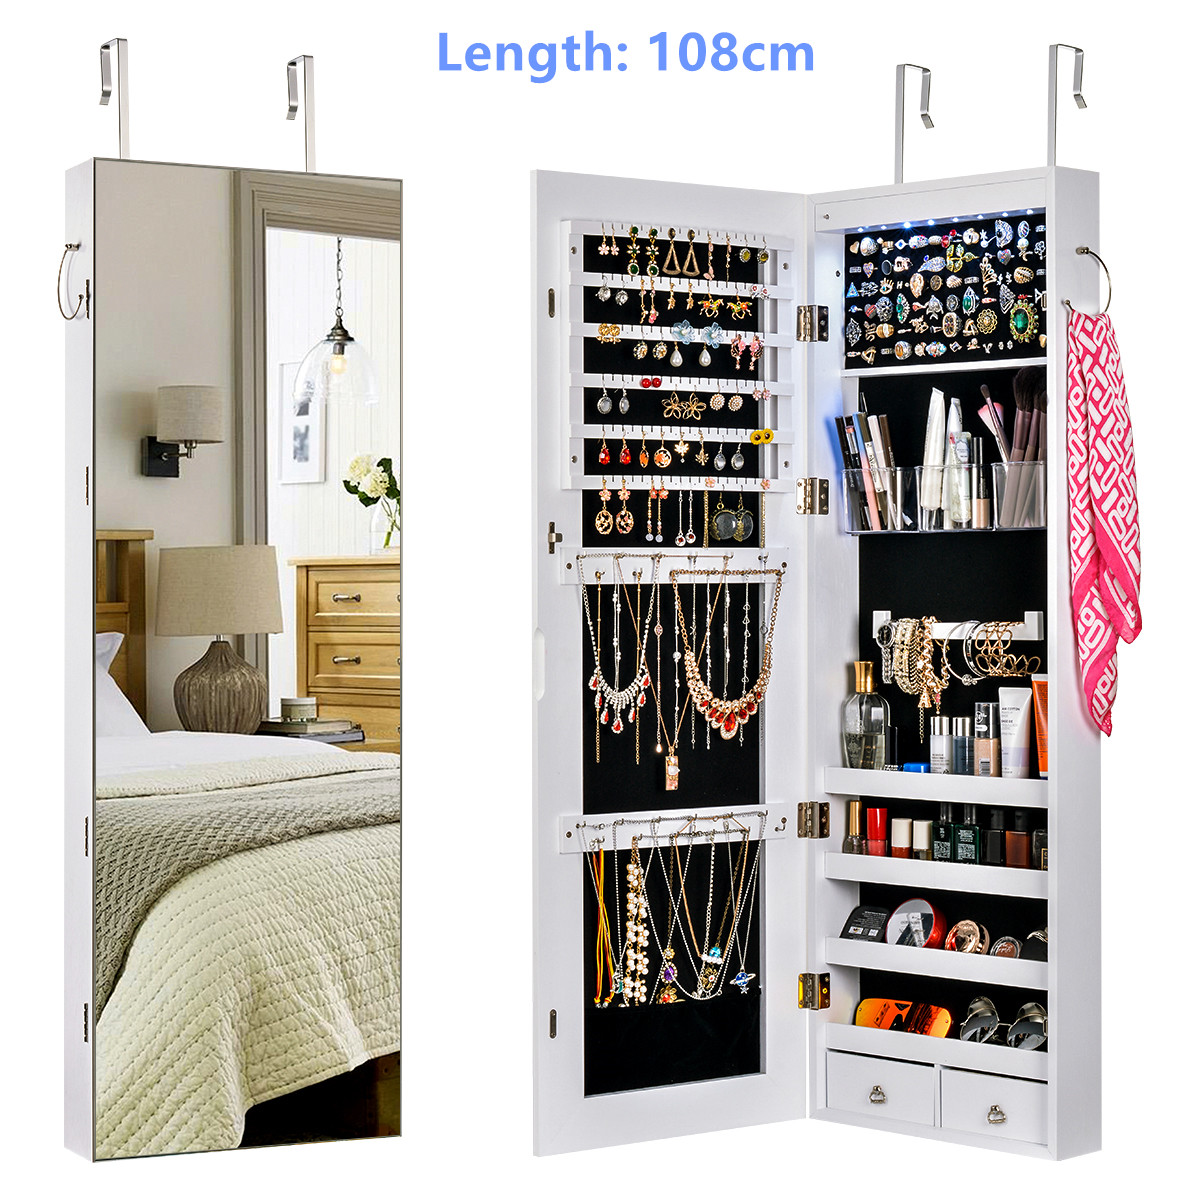 Multifunctional LED Jewelry Mirror Cabinet Wall Door Mounted Jewelry Cabinet Lockable Armoire Organizer Dresser Mirror with LED 8